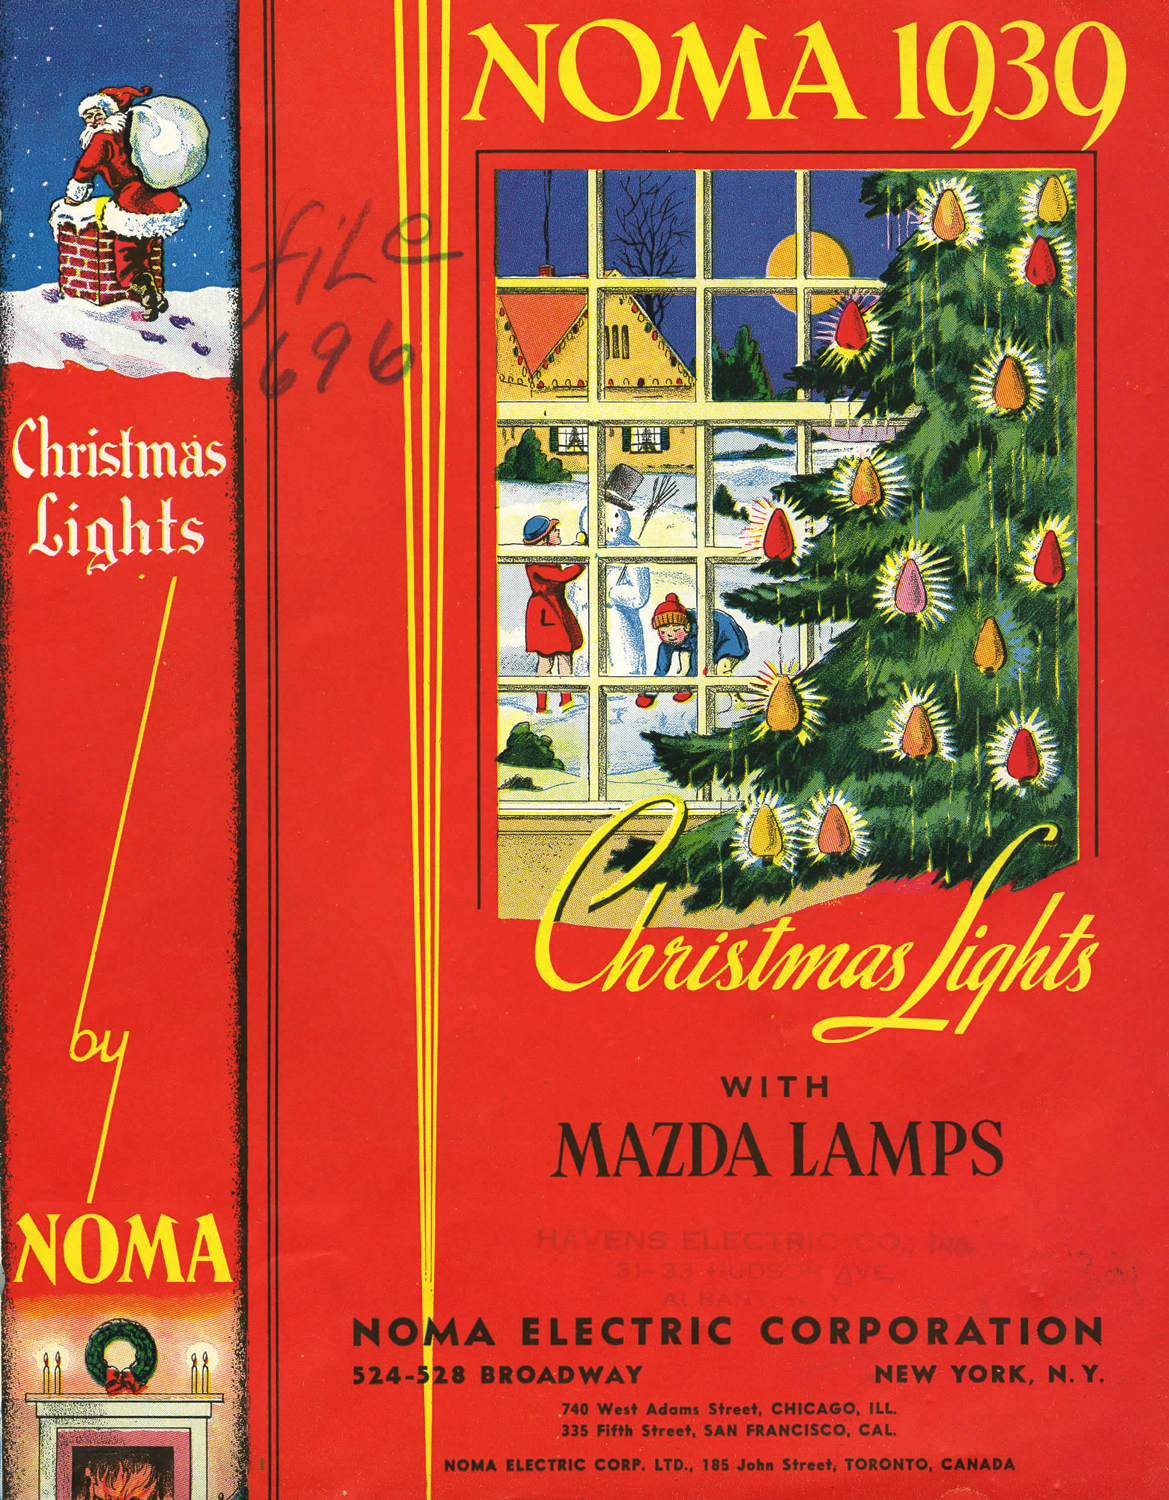 The cover of a 1939 NOMA catalog. (From Christmas lights with Mazda ...